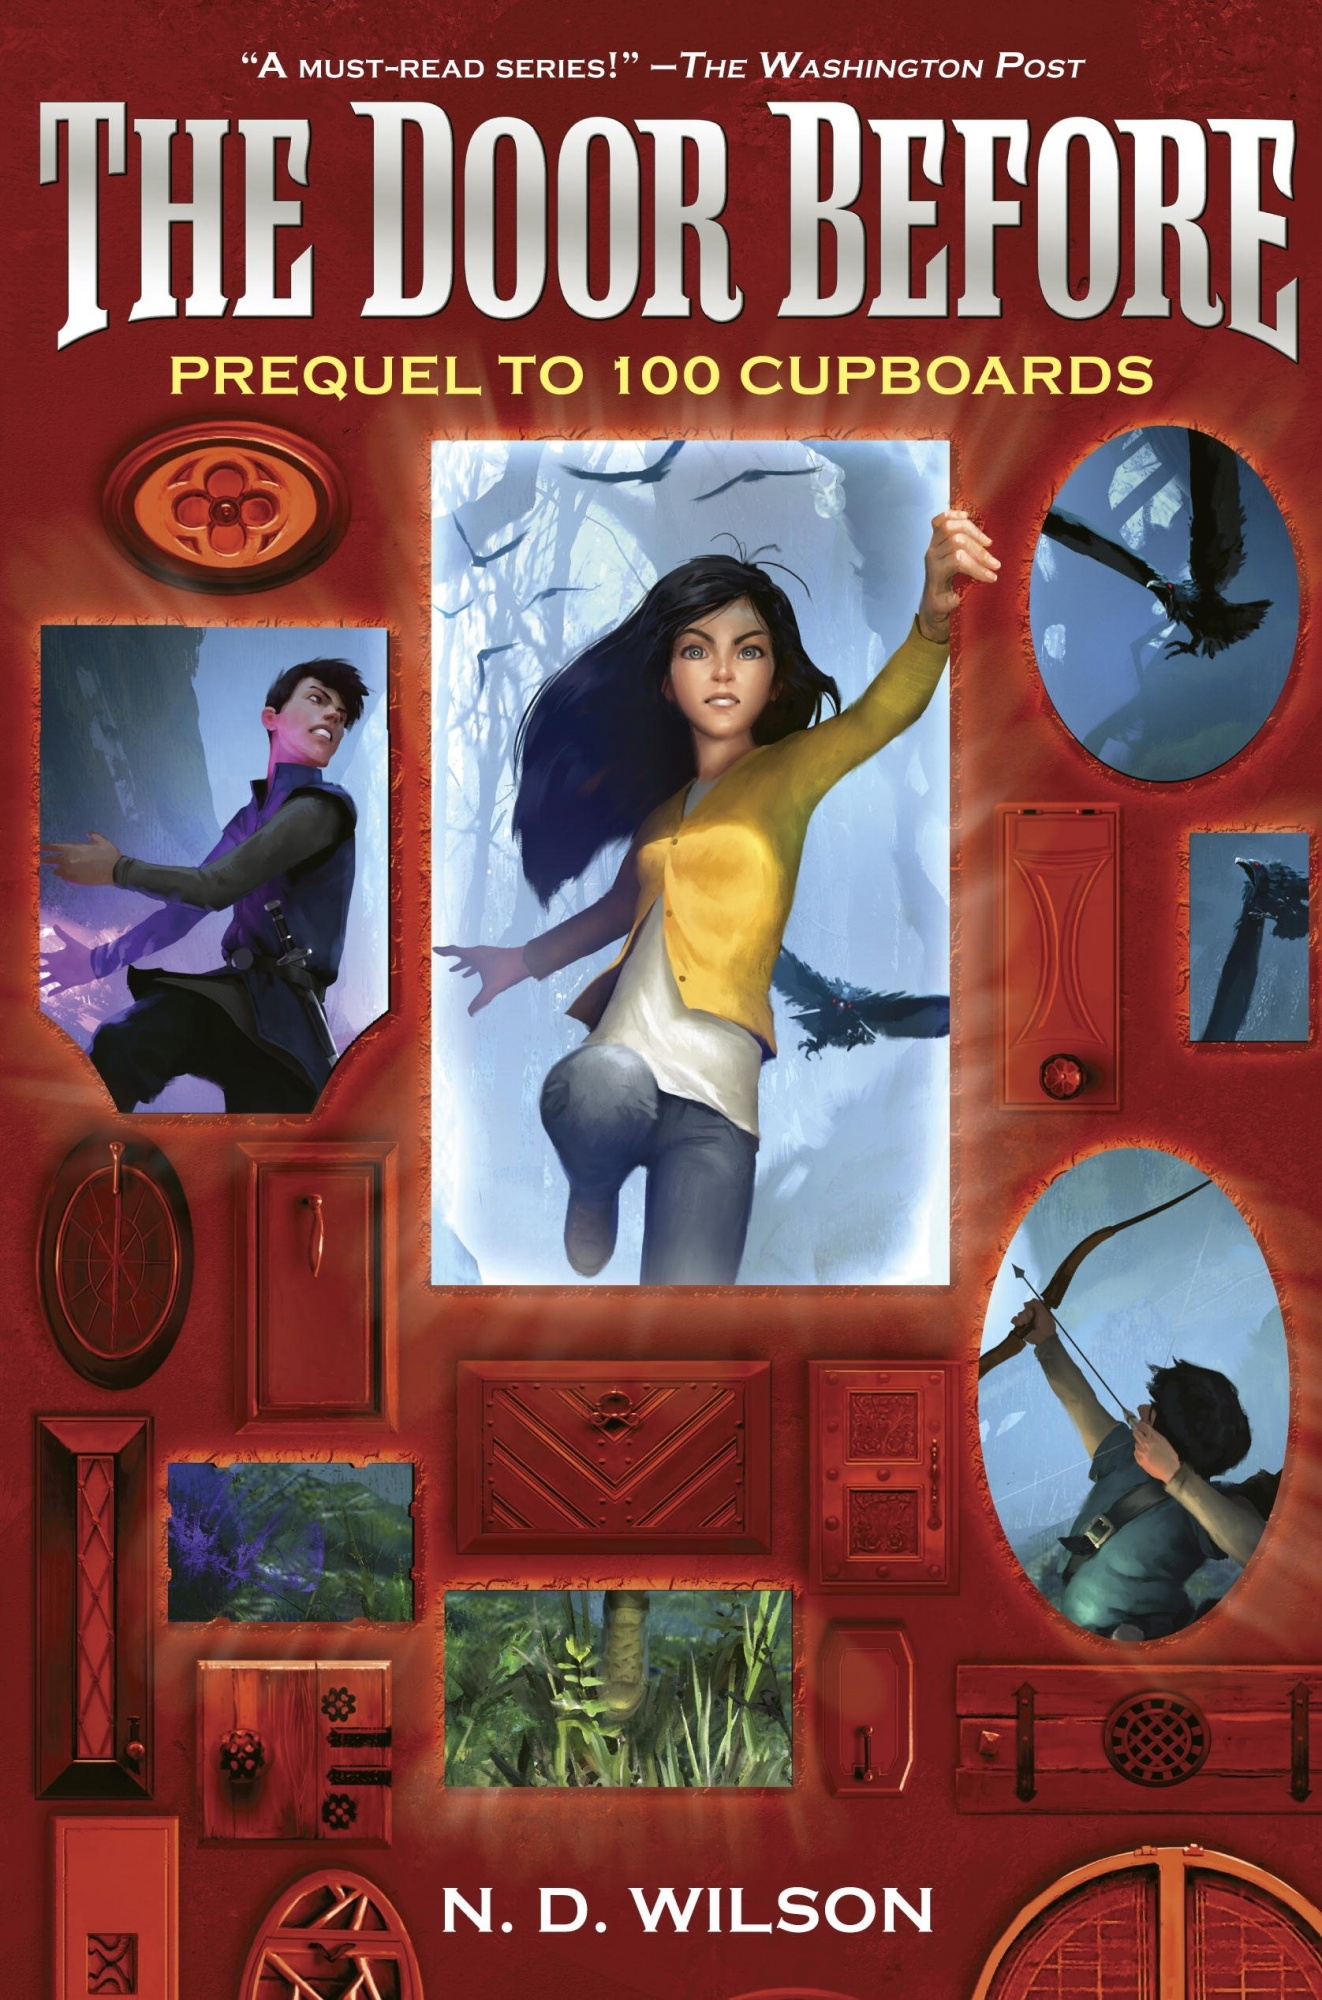 The Door Before (100 Cupboards Prequel)100 Cupboards Prequel by N. D. Wilson, ISBN: 9780449816776